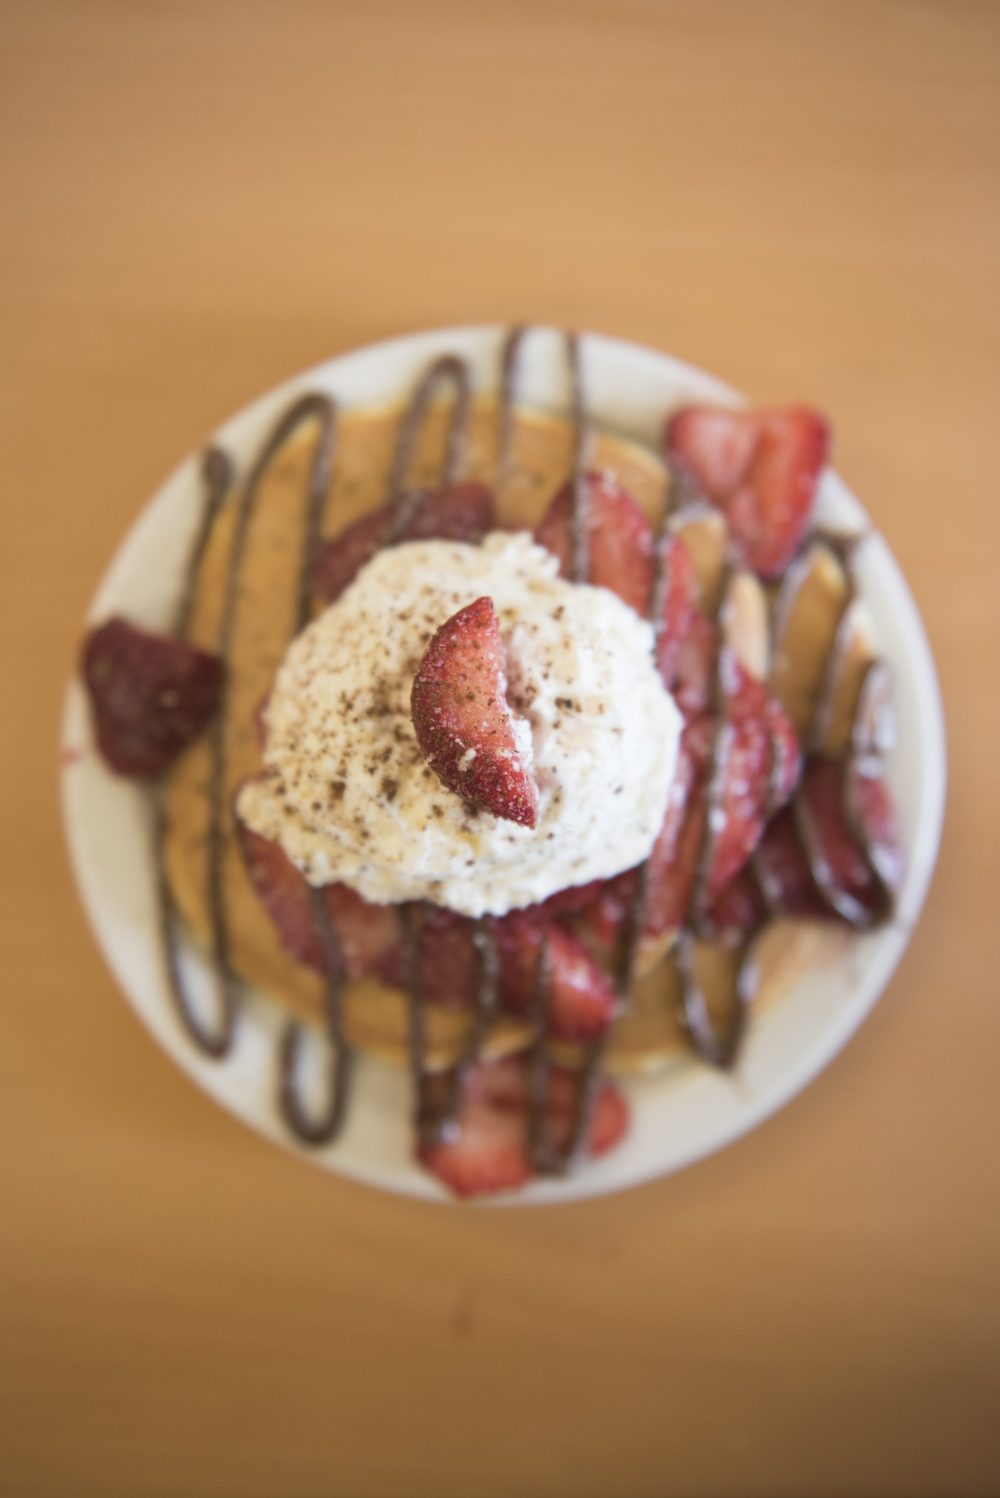 Hazelnut Pancakes with Strawberries is shown at BabyStacks in Henderson, Friday, June 26, 2015.(Jason Ogulnik/Las Vegas Review-Journal)